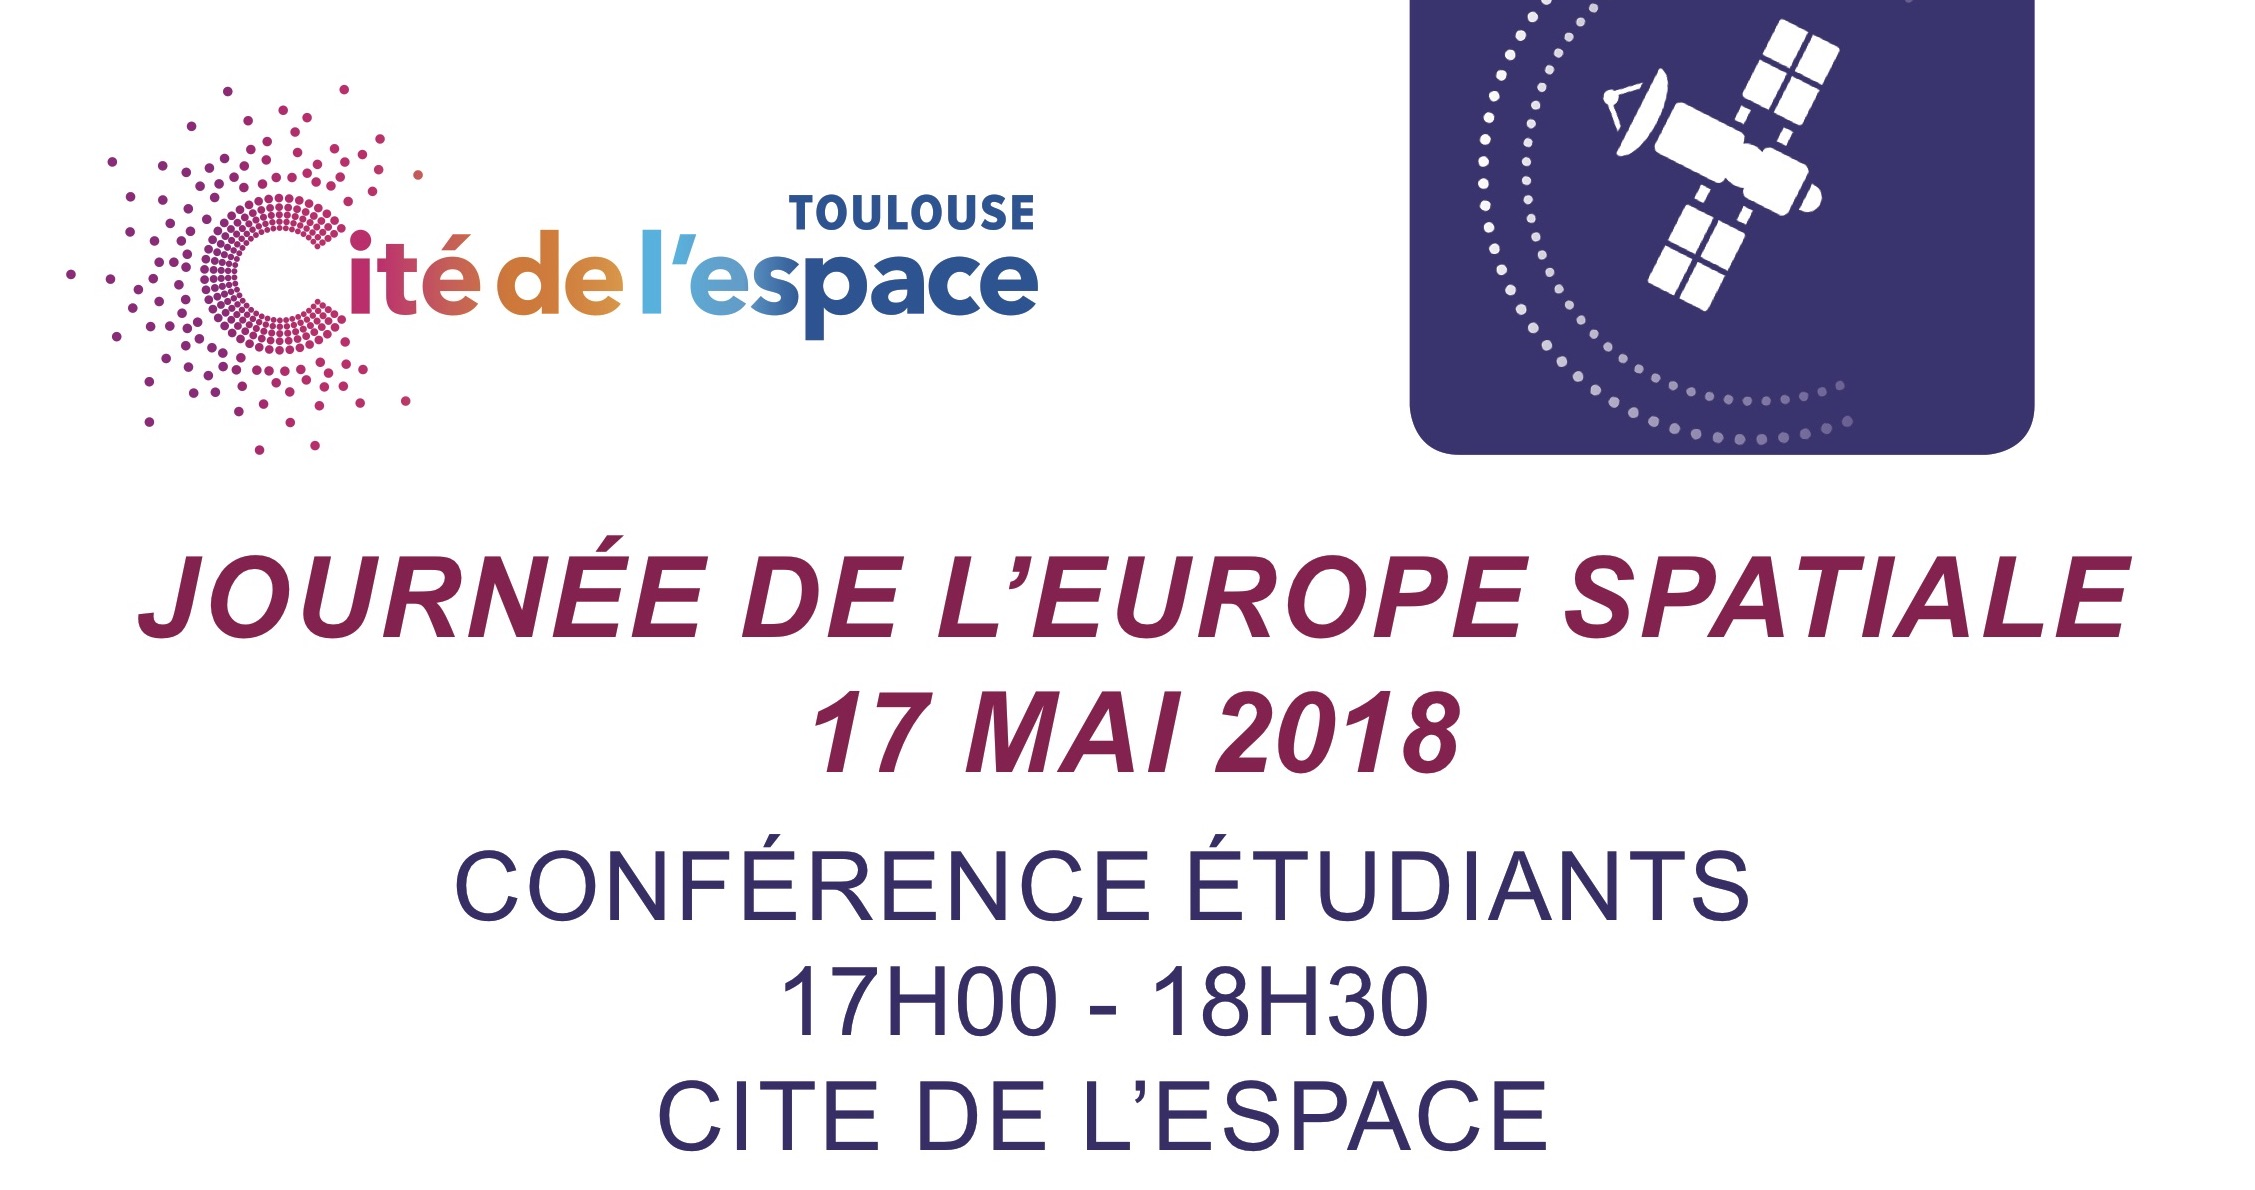 conf-etudiants-2018 - copie